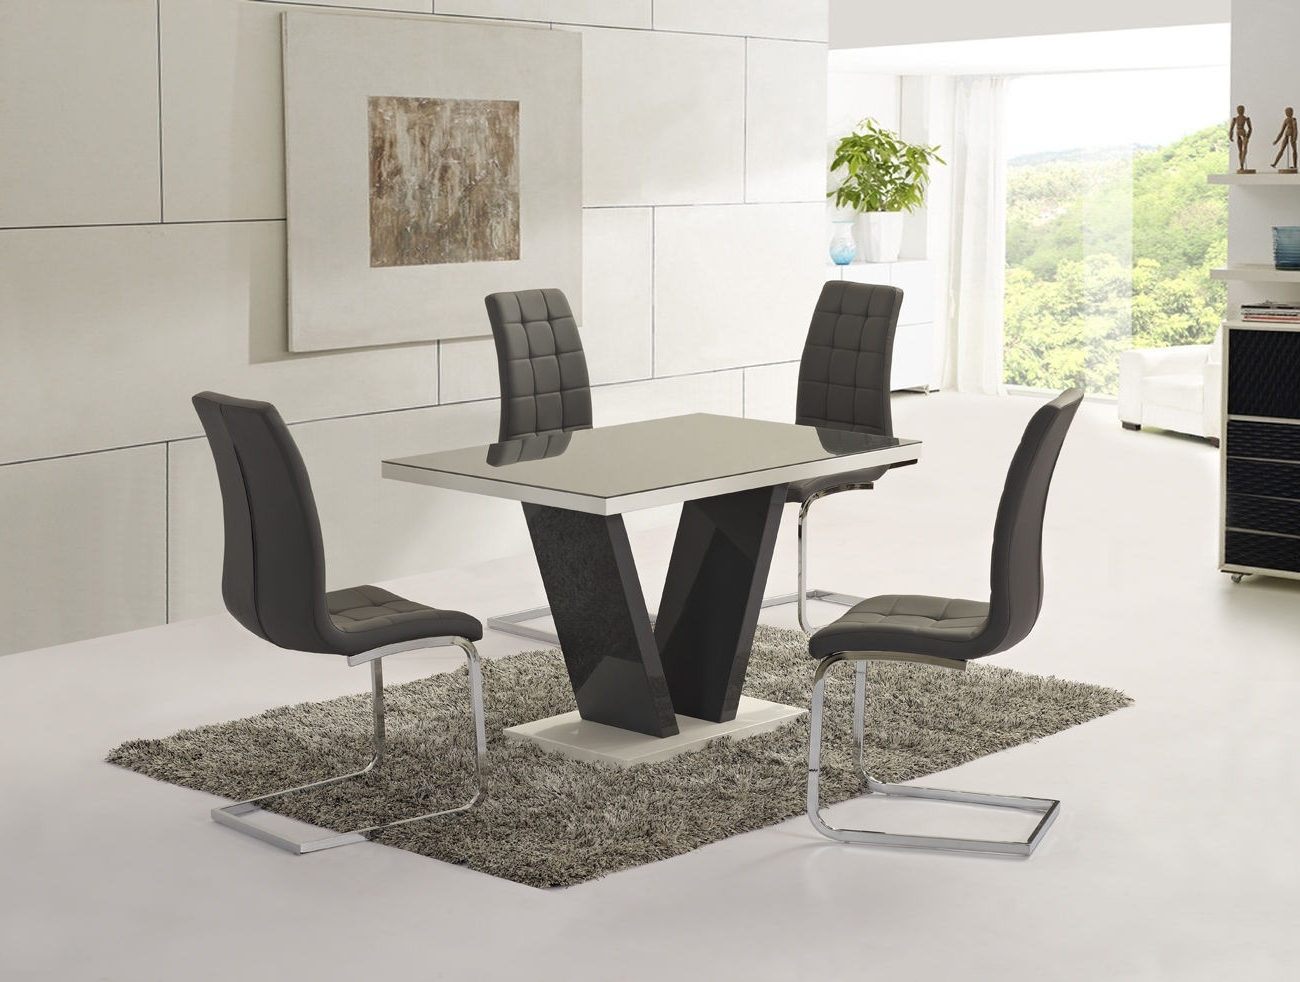 Dining Tables With Grey Chairs with Recent Ga Vico Gloss Grey Glass Top Designer 160Cm Dining Set - 4 6 Grey